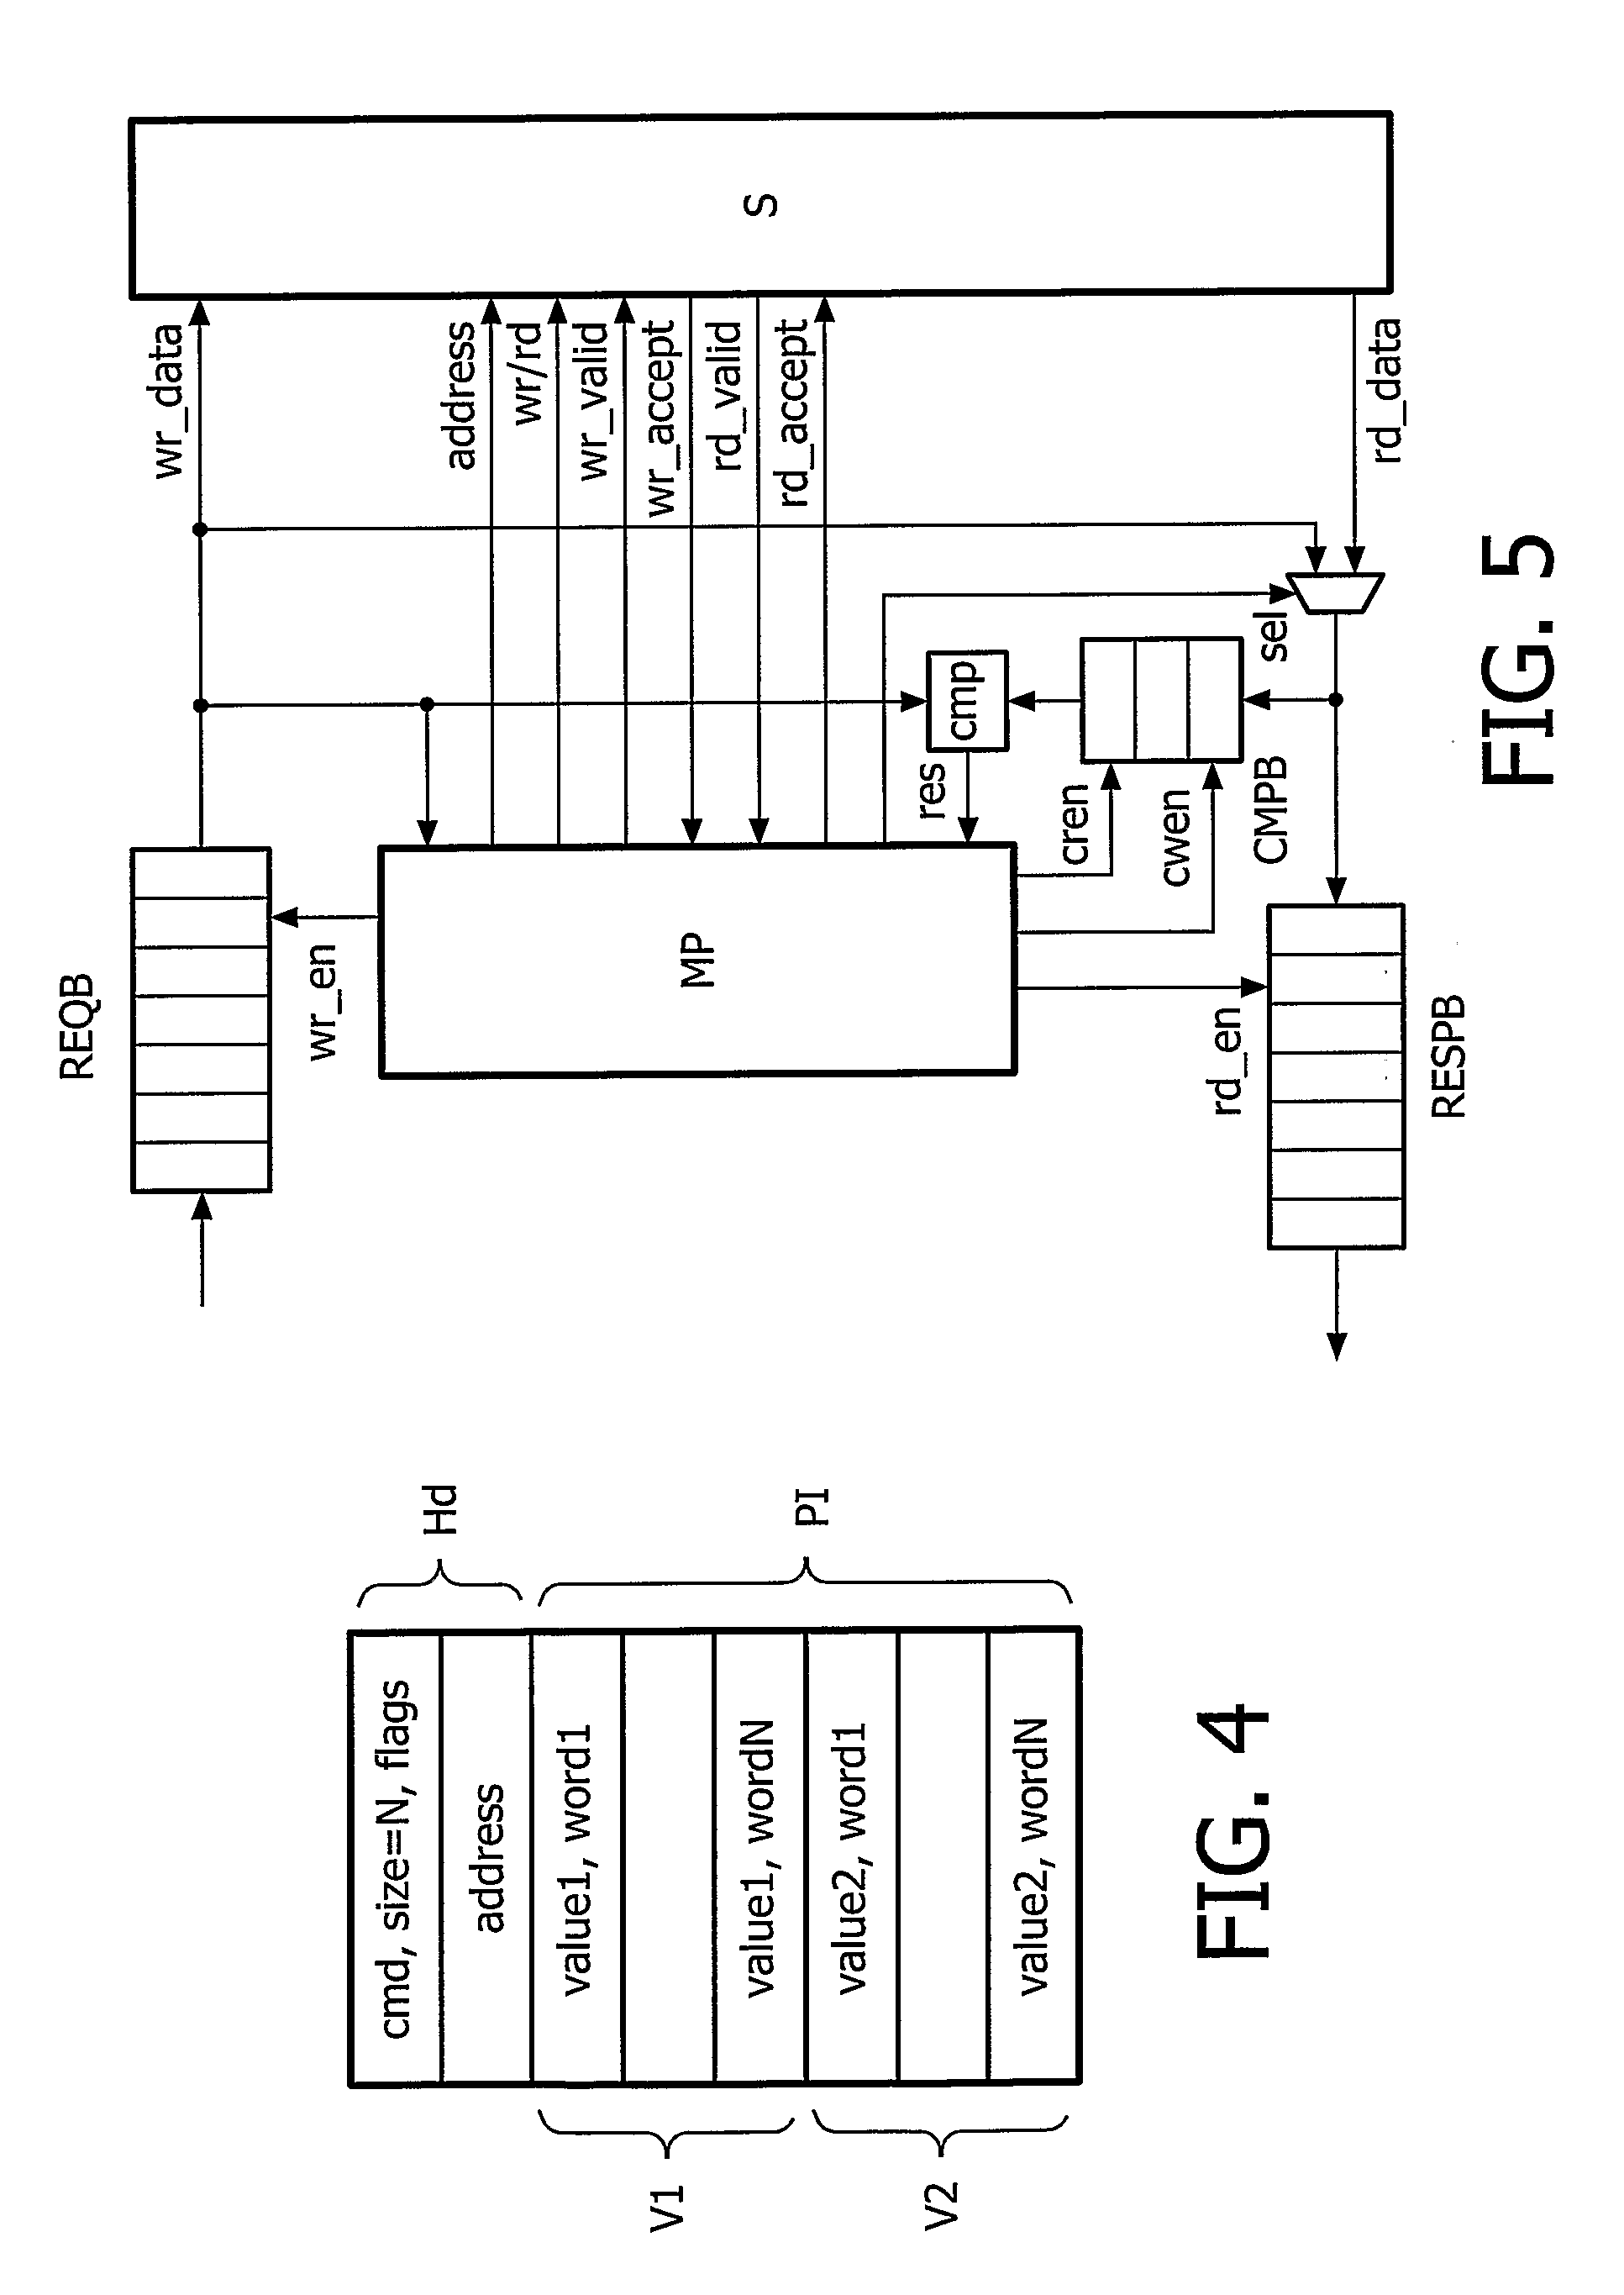 patent us20070234006 - integrated circuit and metod for issuing transactions